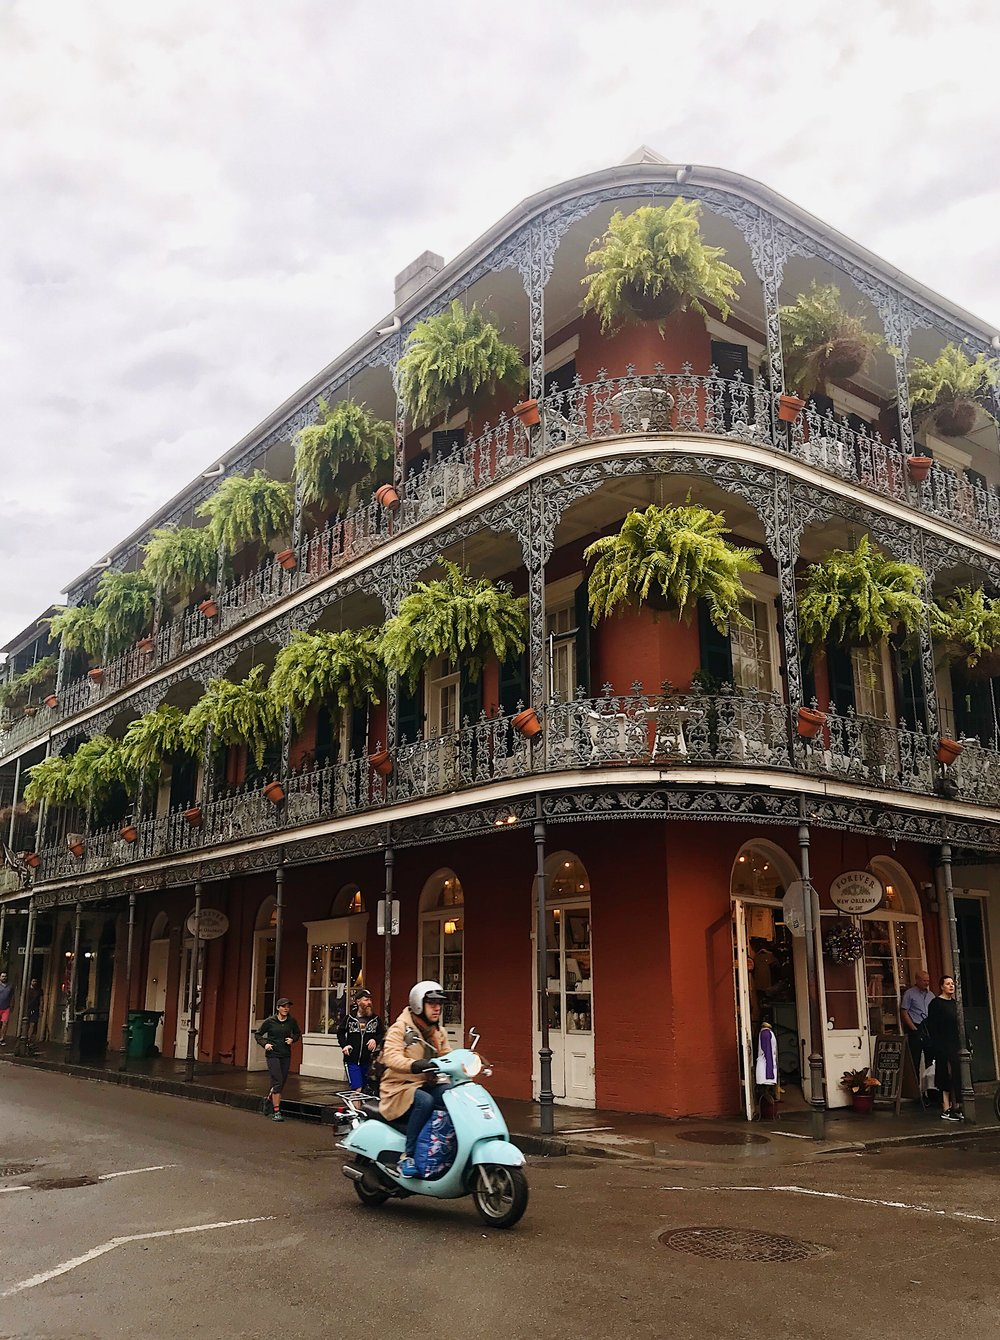 The picturesque streets of New Orleans